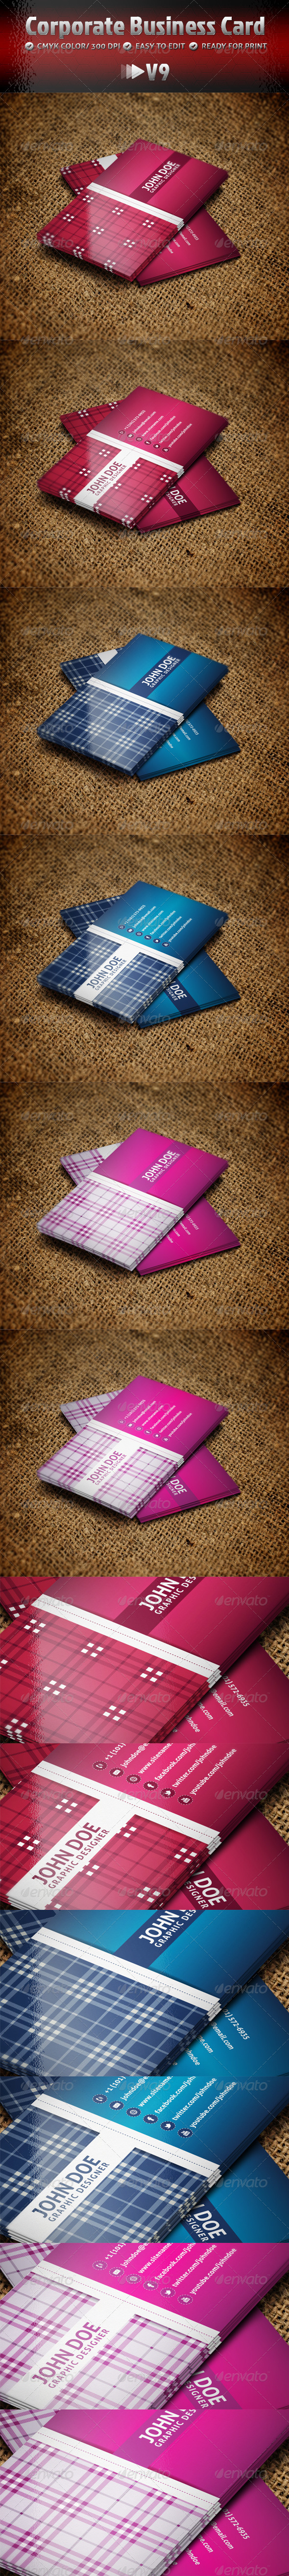 GraphicRiver Corporate Business Card V9 4844526